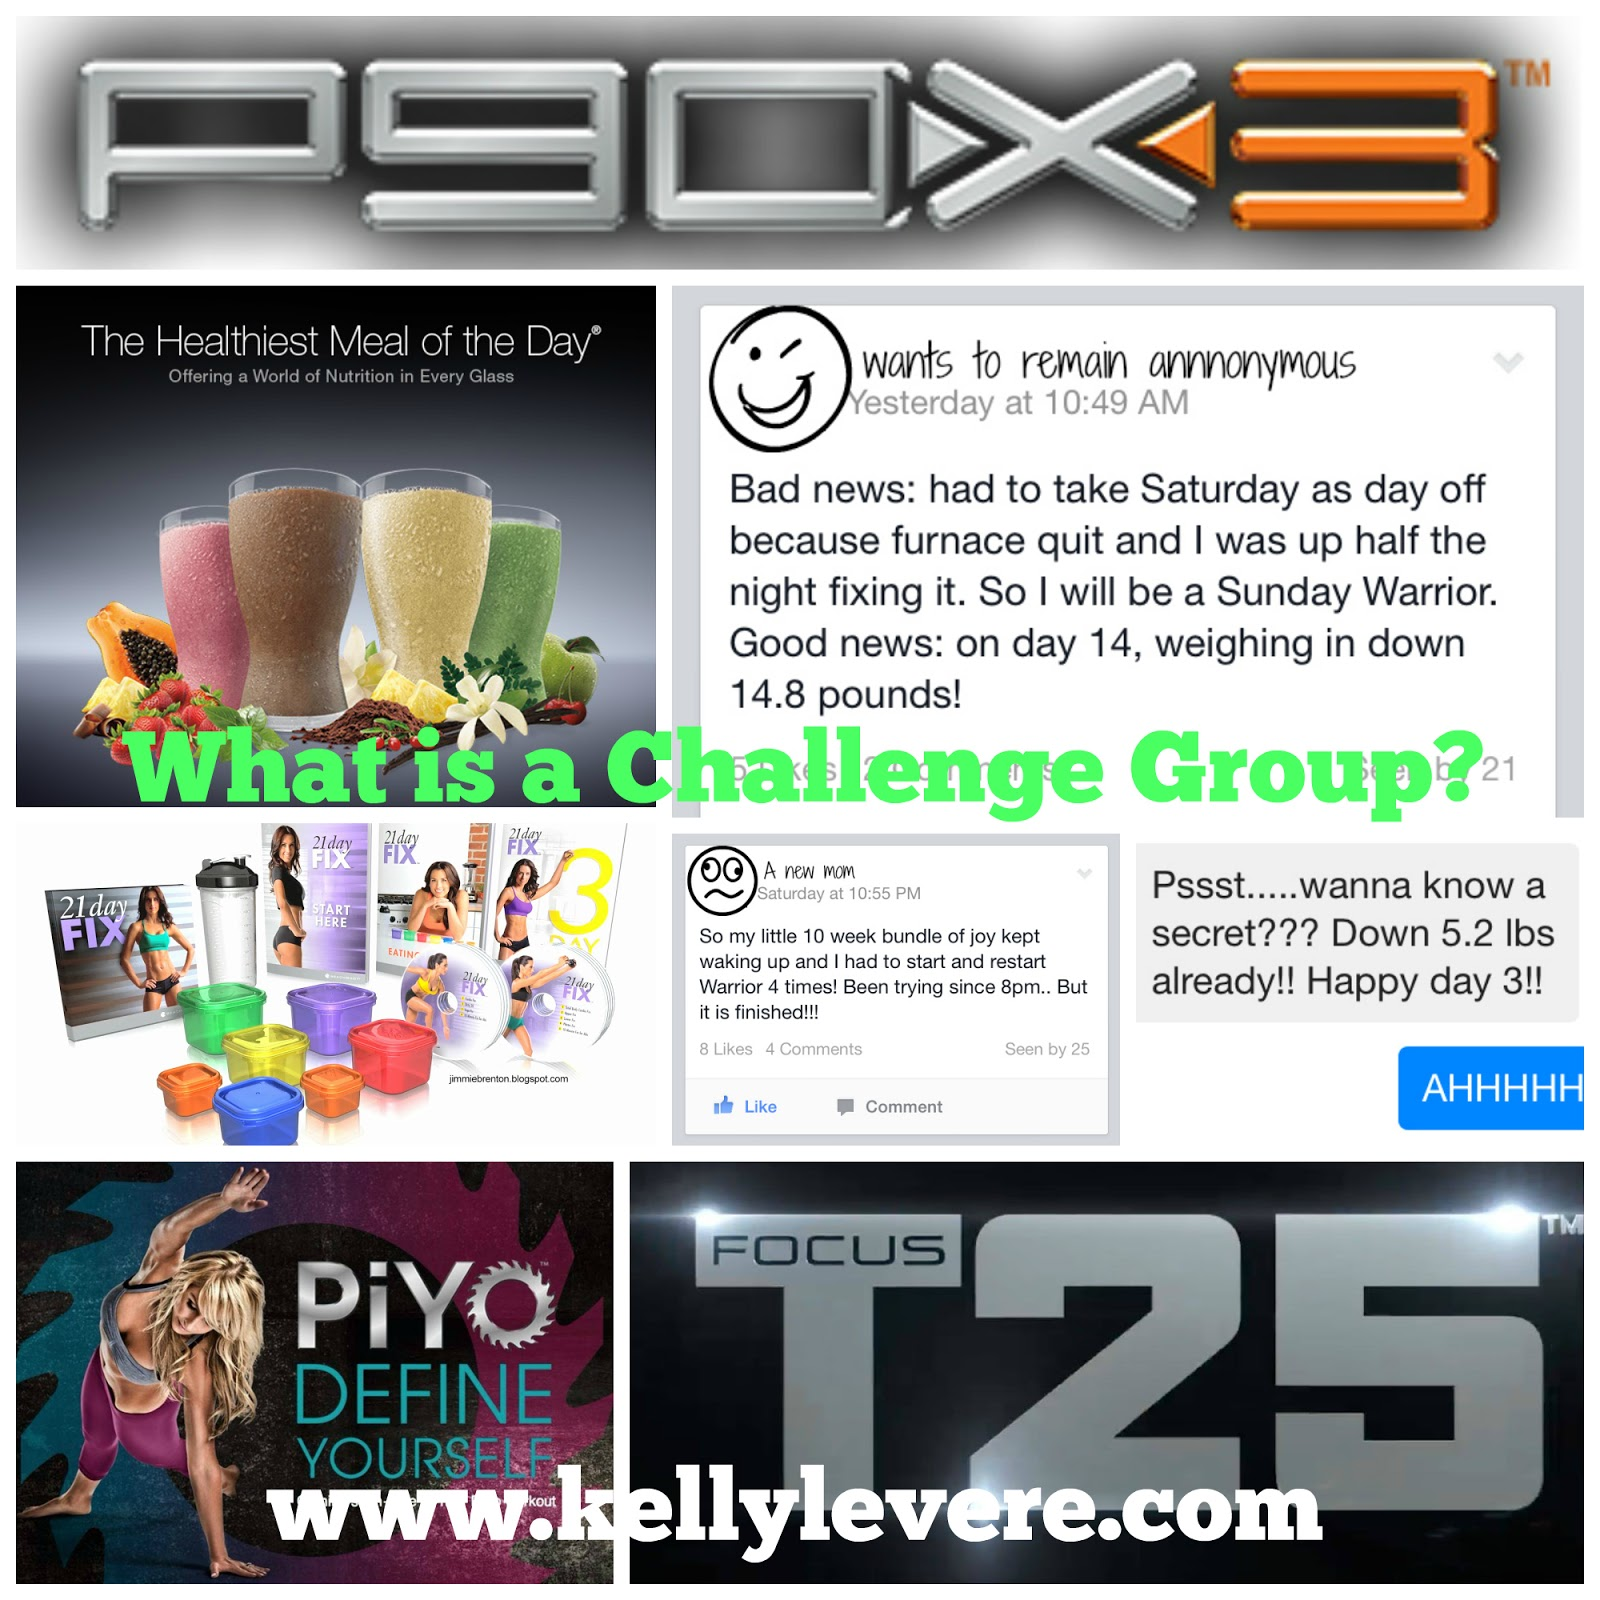 q what is a challenge group